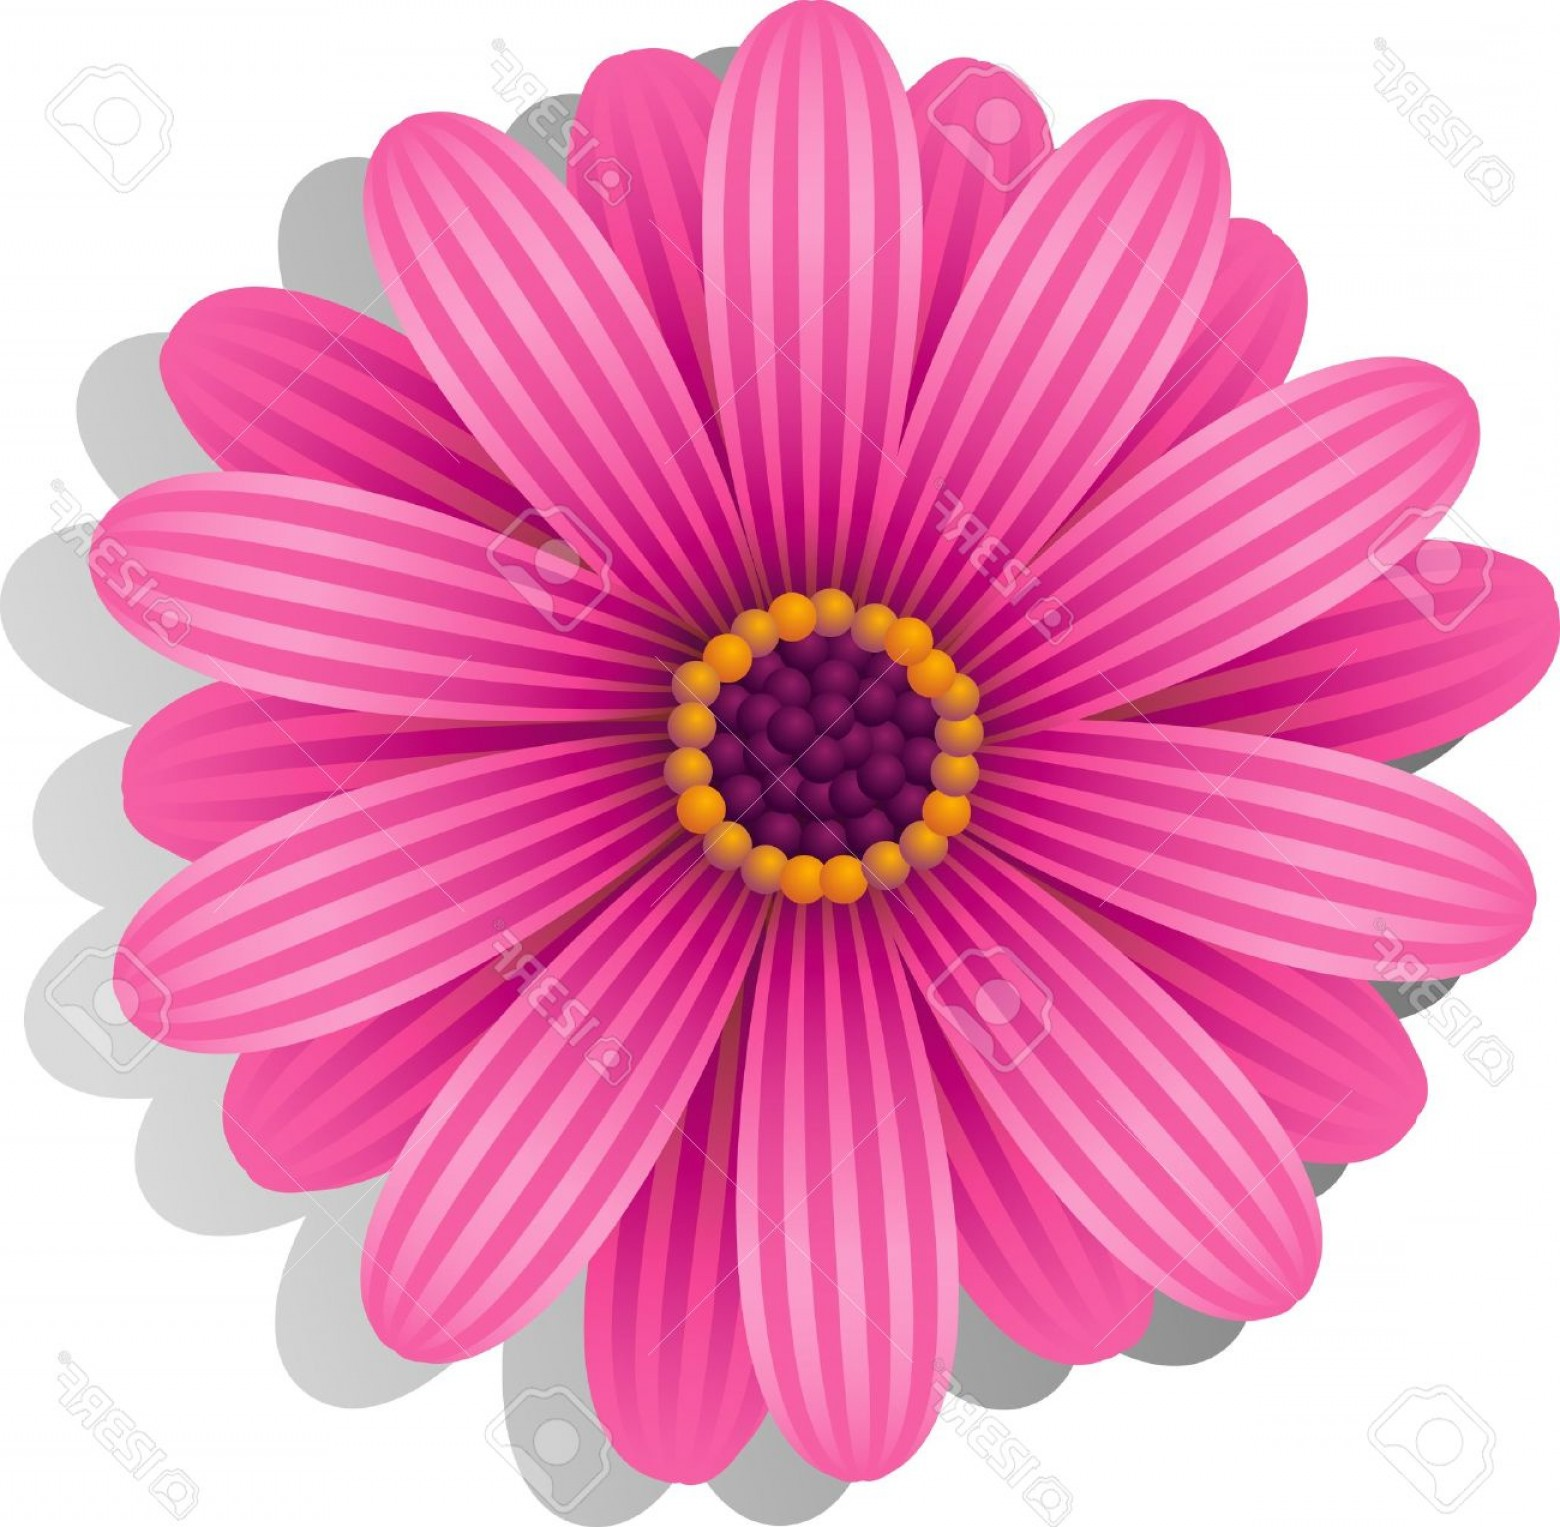 Orange Gerber Daisy Vector: Beautiful Photobeautiful Pink Gerber Daisy Over White